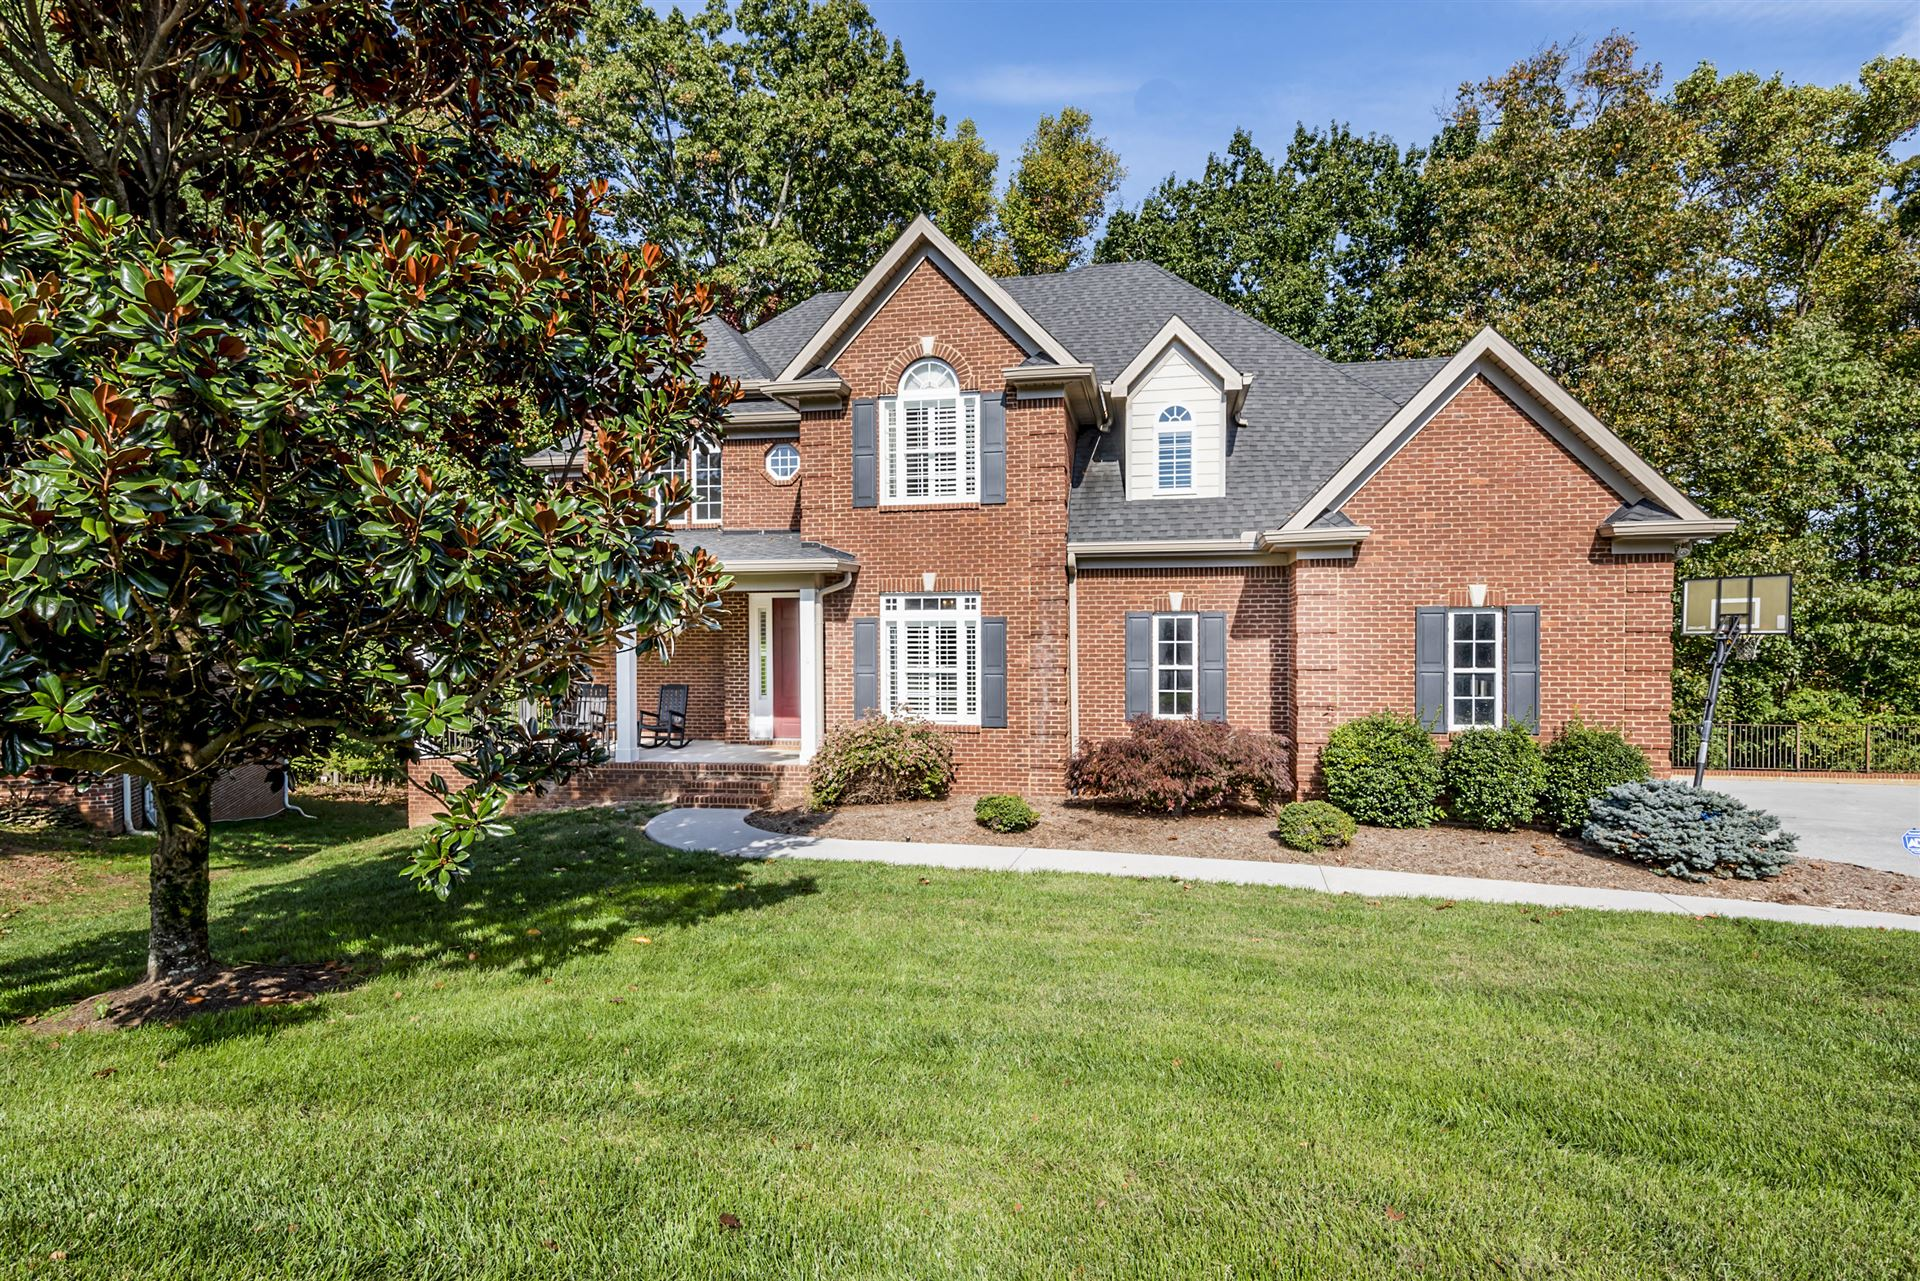 Photo of 1701 Evening Shade Lane, Knoxville, TN 37919 (MLS # 1133381)